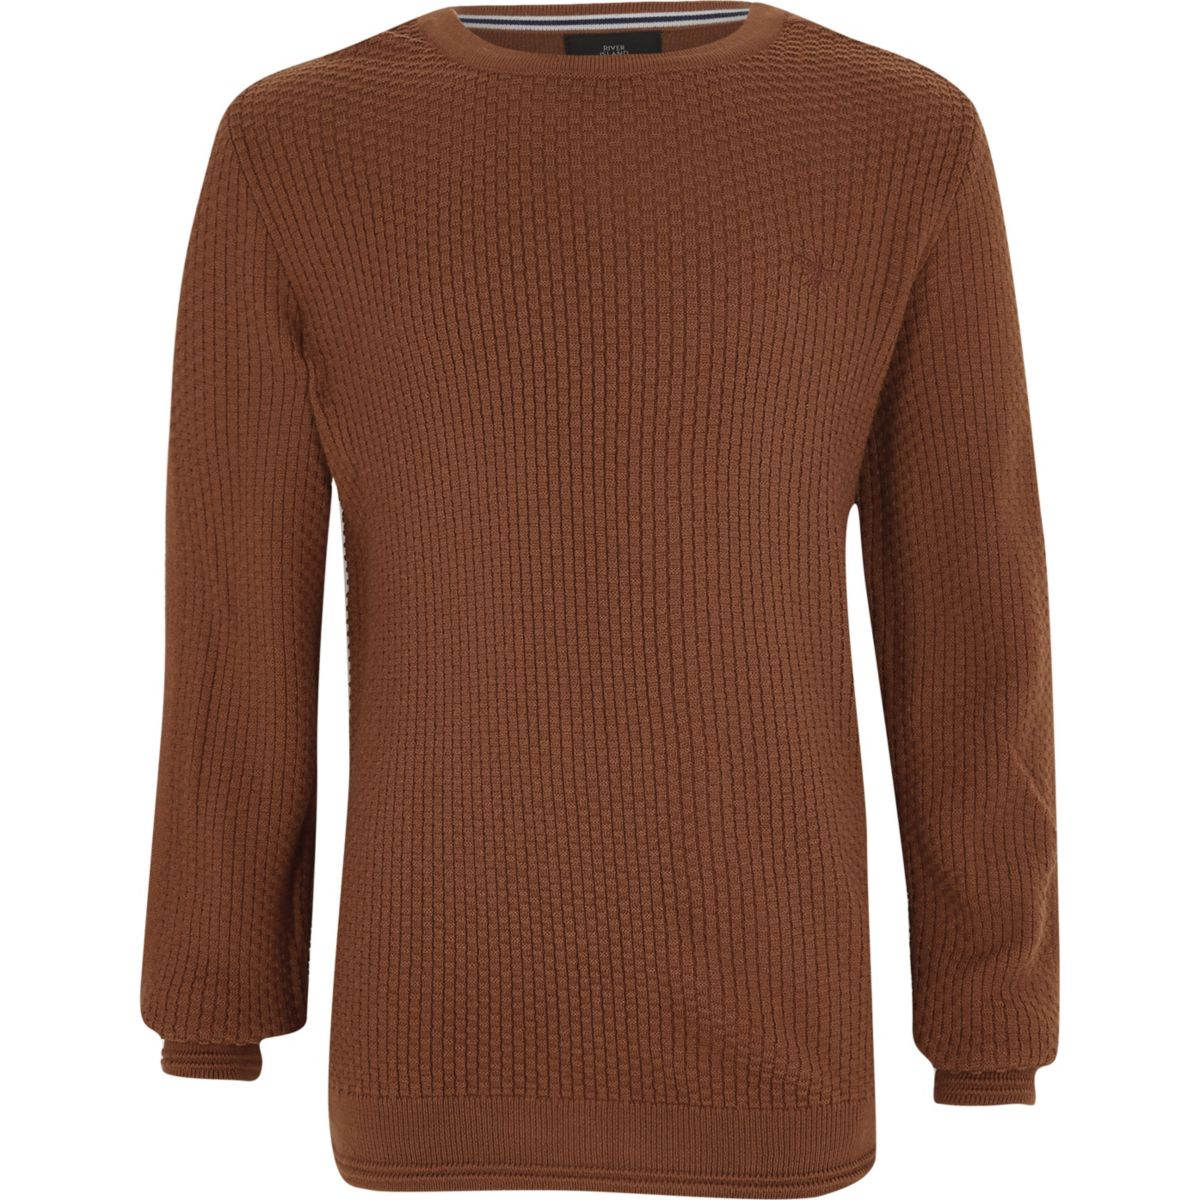 Boys brown textured sweater